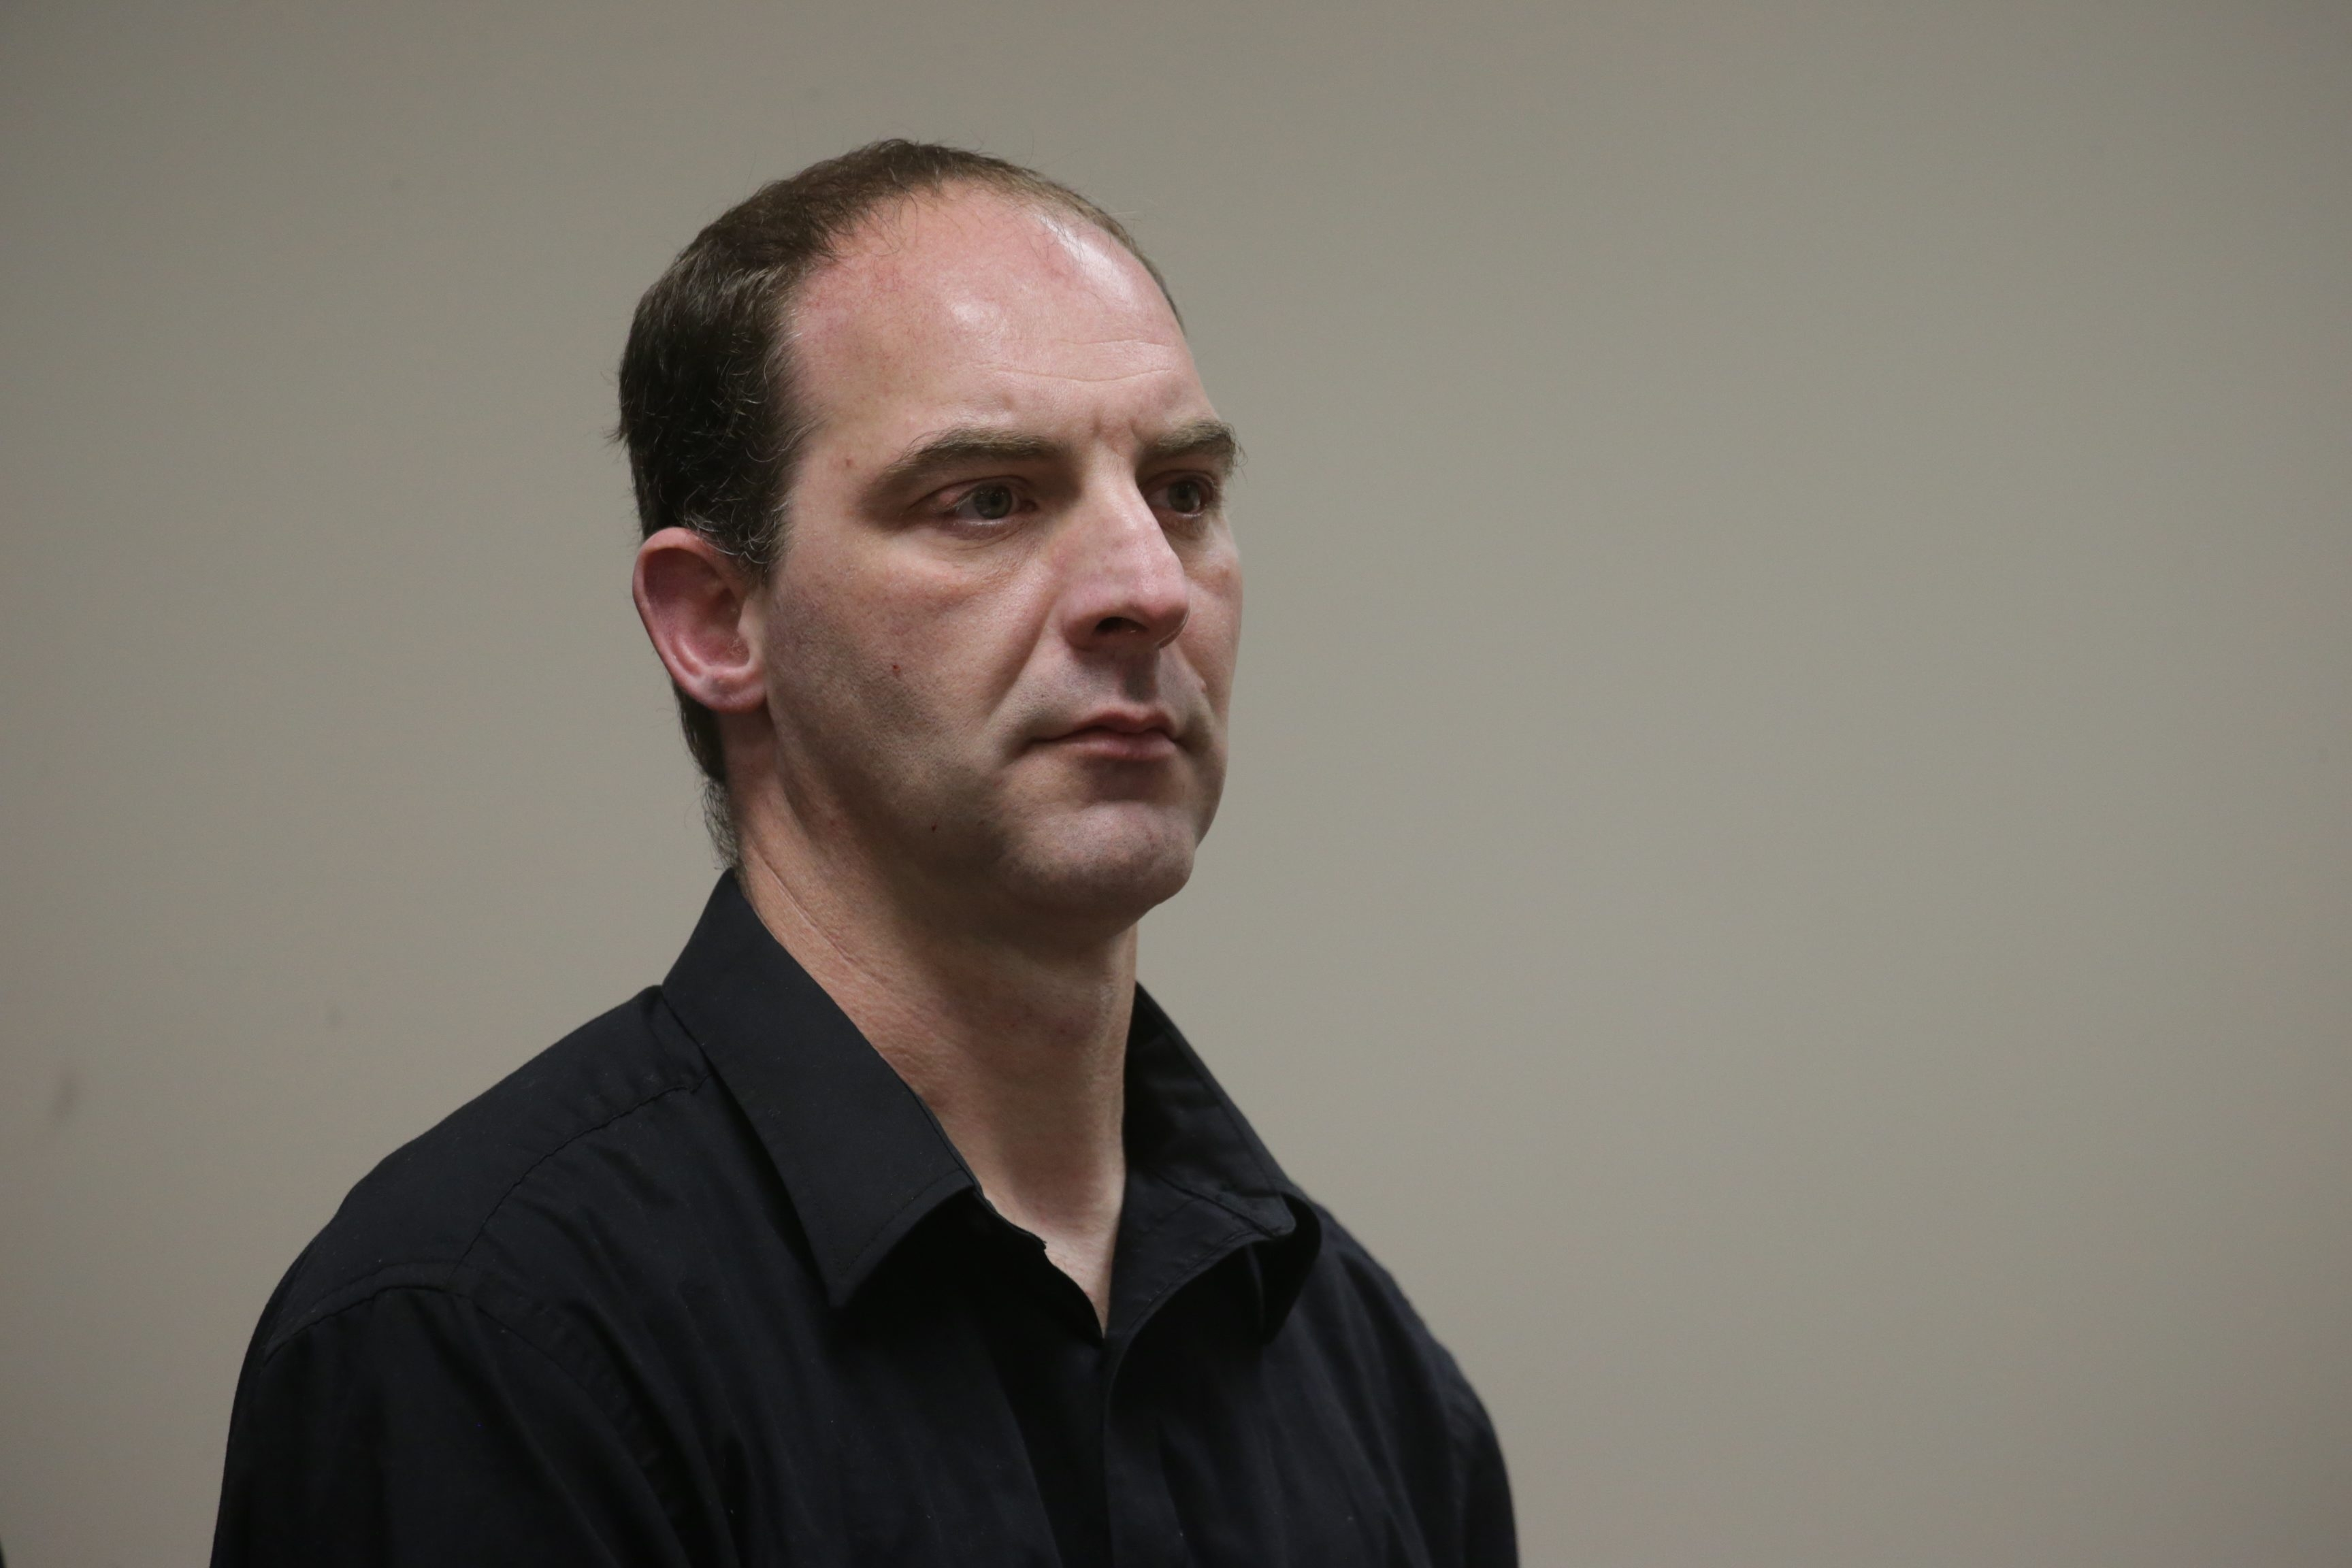 Robert E. MacLeod is accused of sexually assaulting a Japanese tourist in Niagara Falls State Park after she got lost and asked him for directions in December.  (John Hickey/Buffalo News)